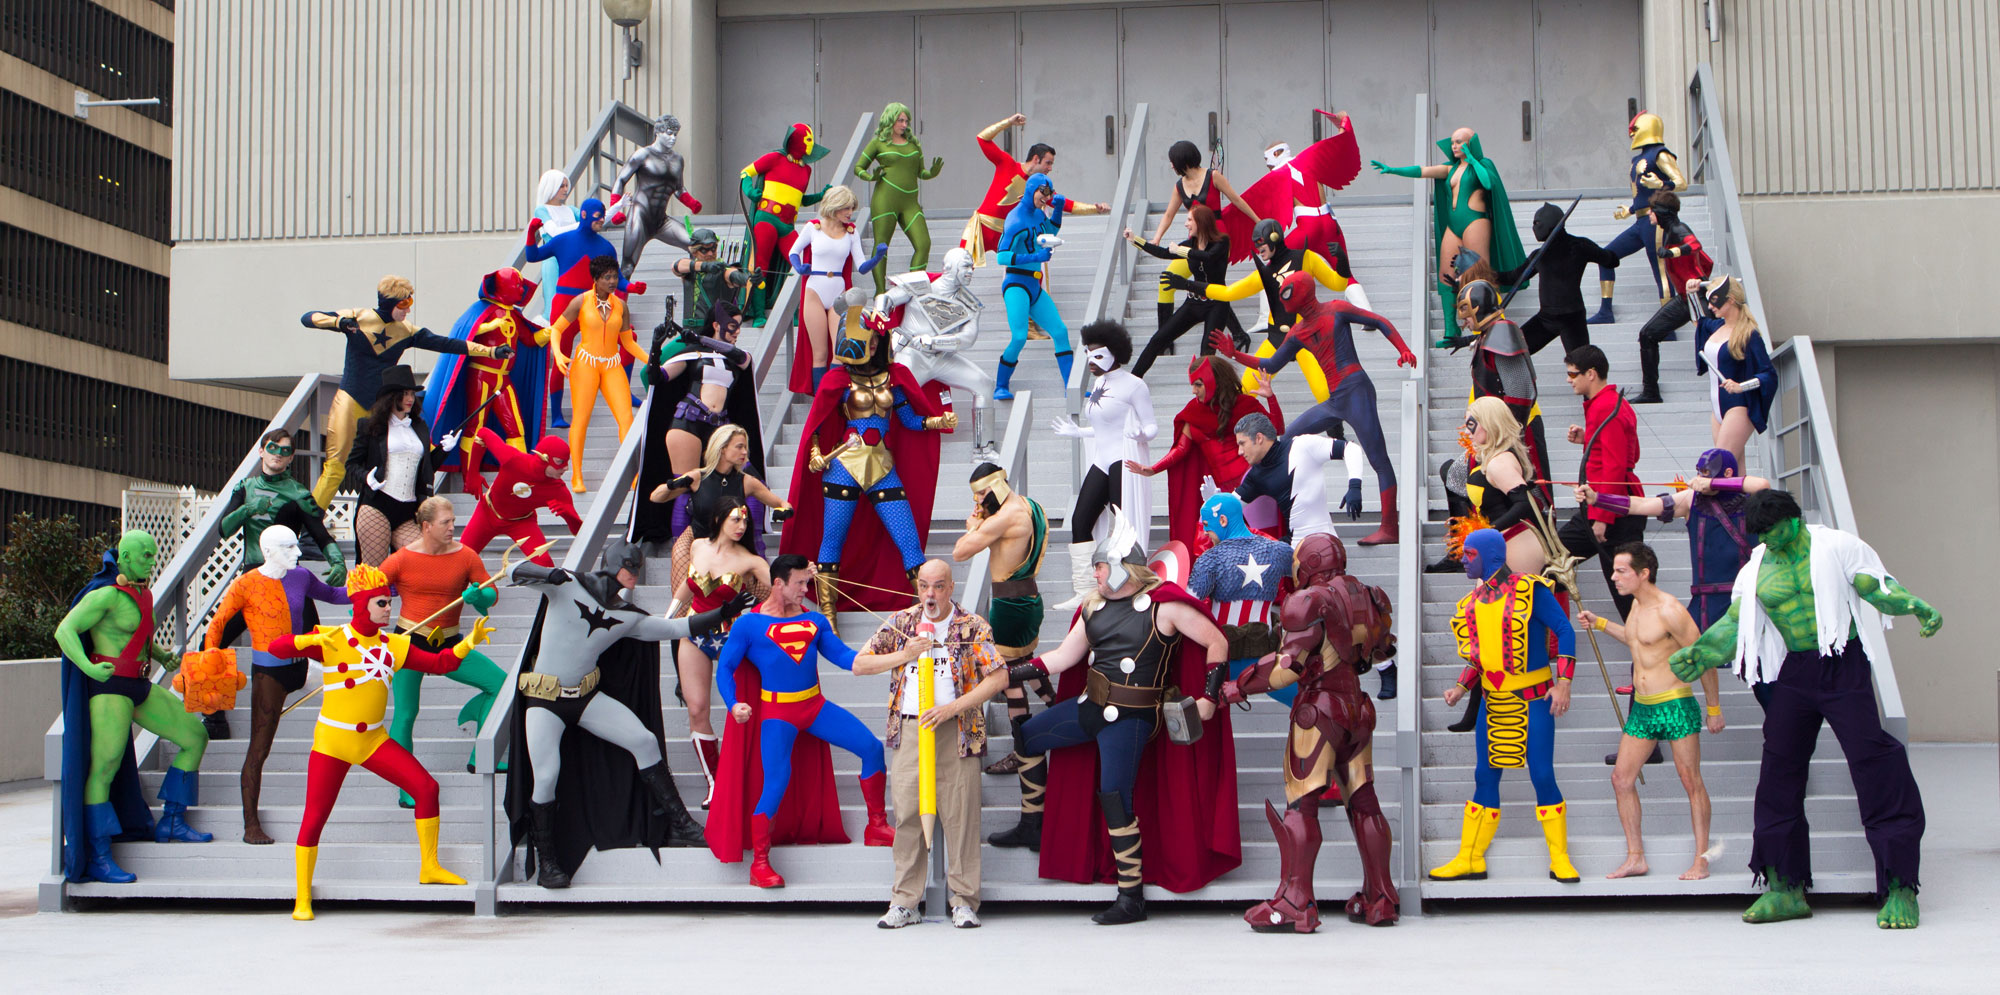 JLA vs Avengers Cosplay with George Perez at DragonCon